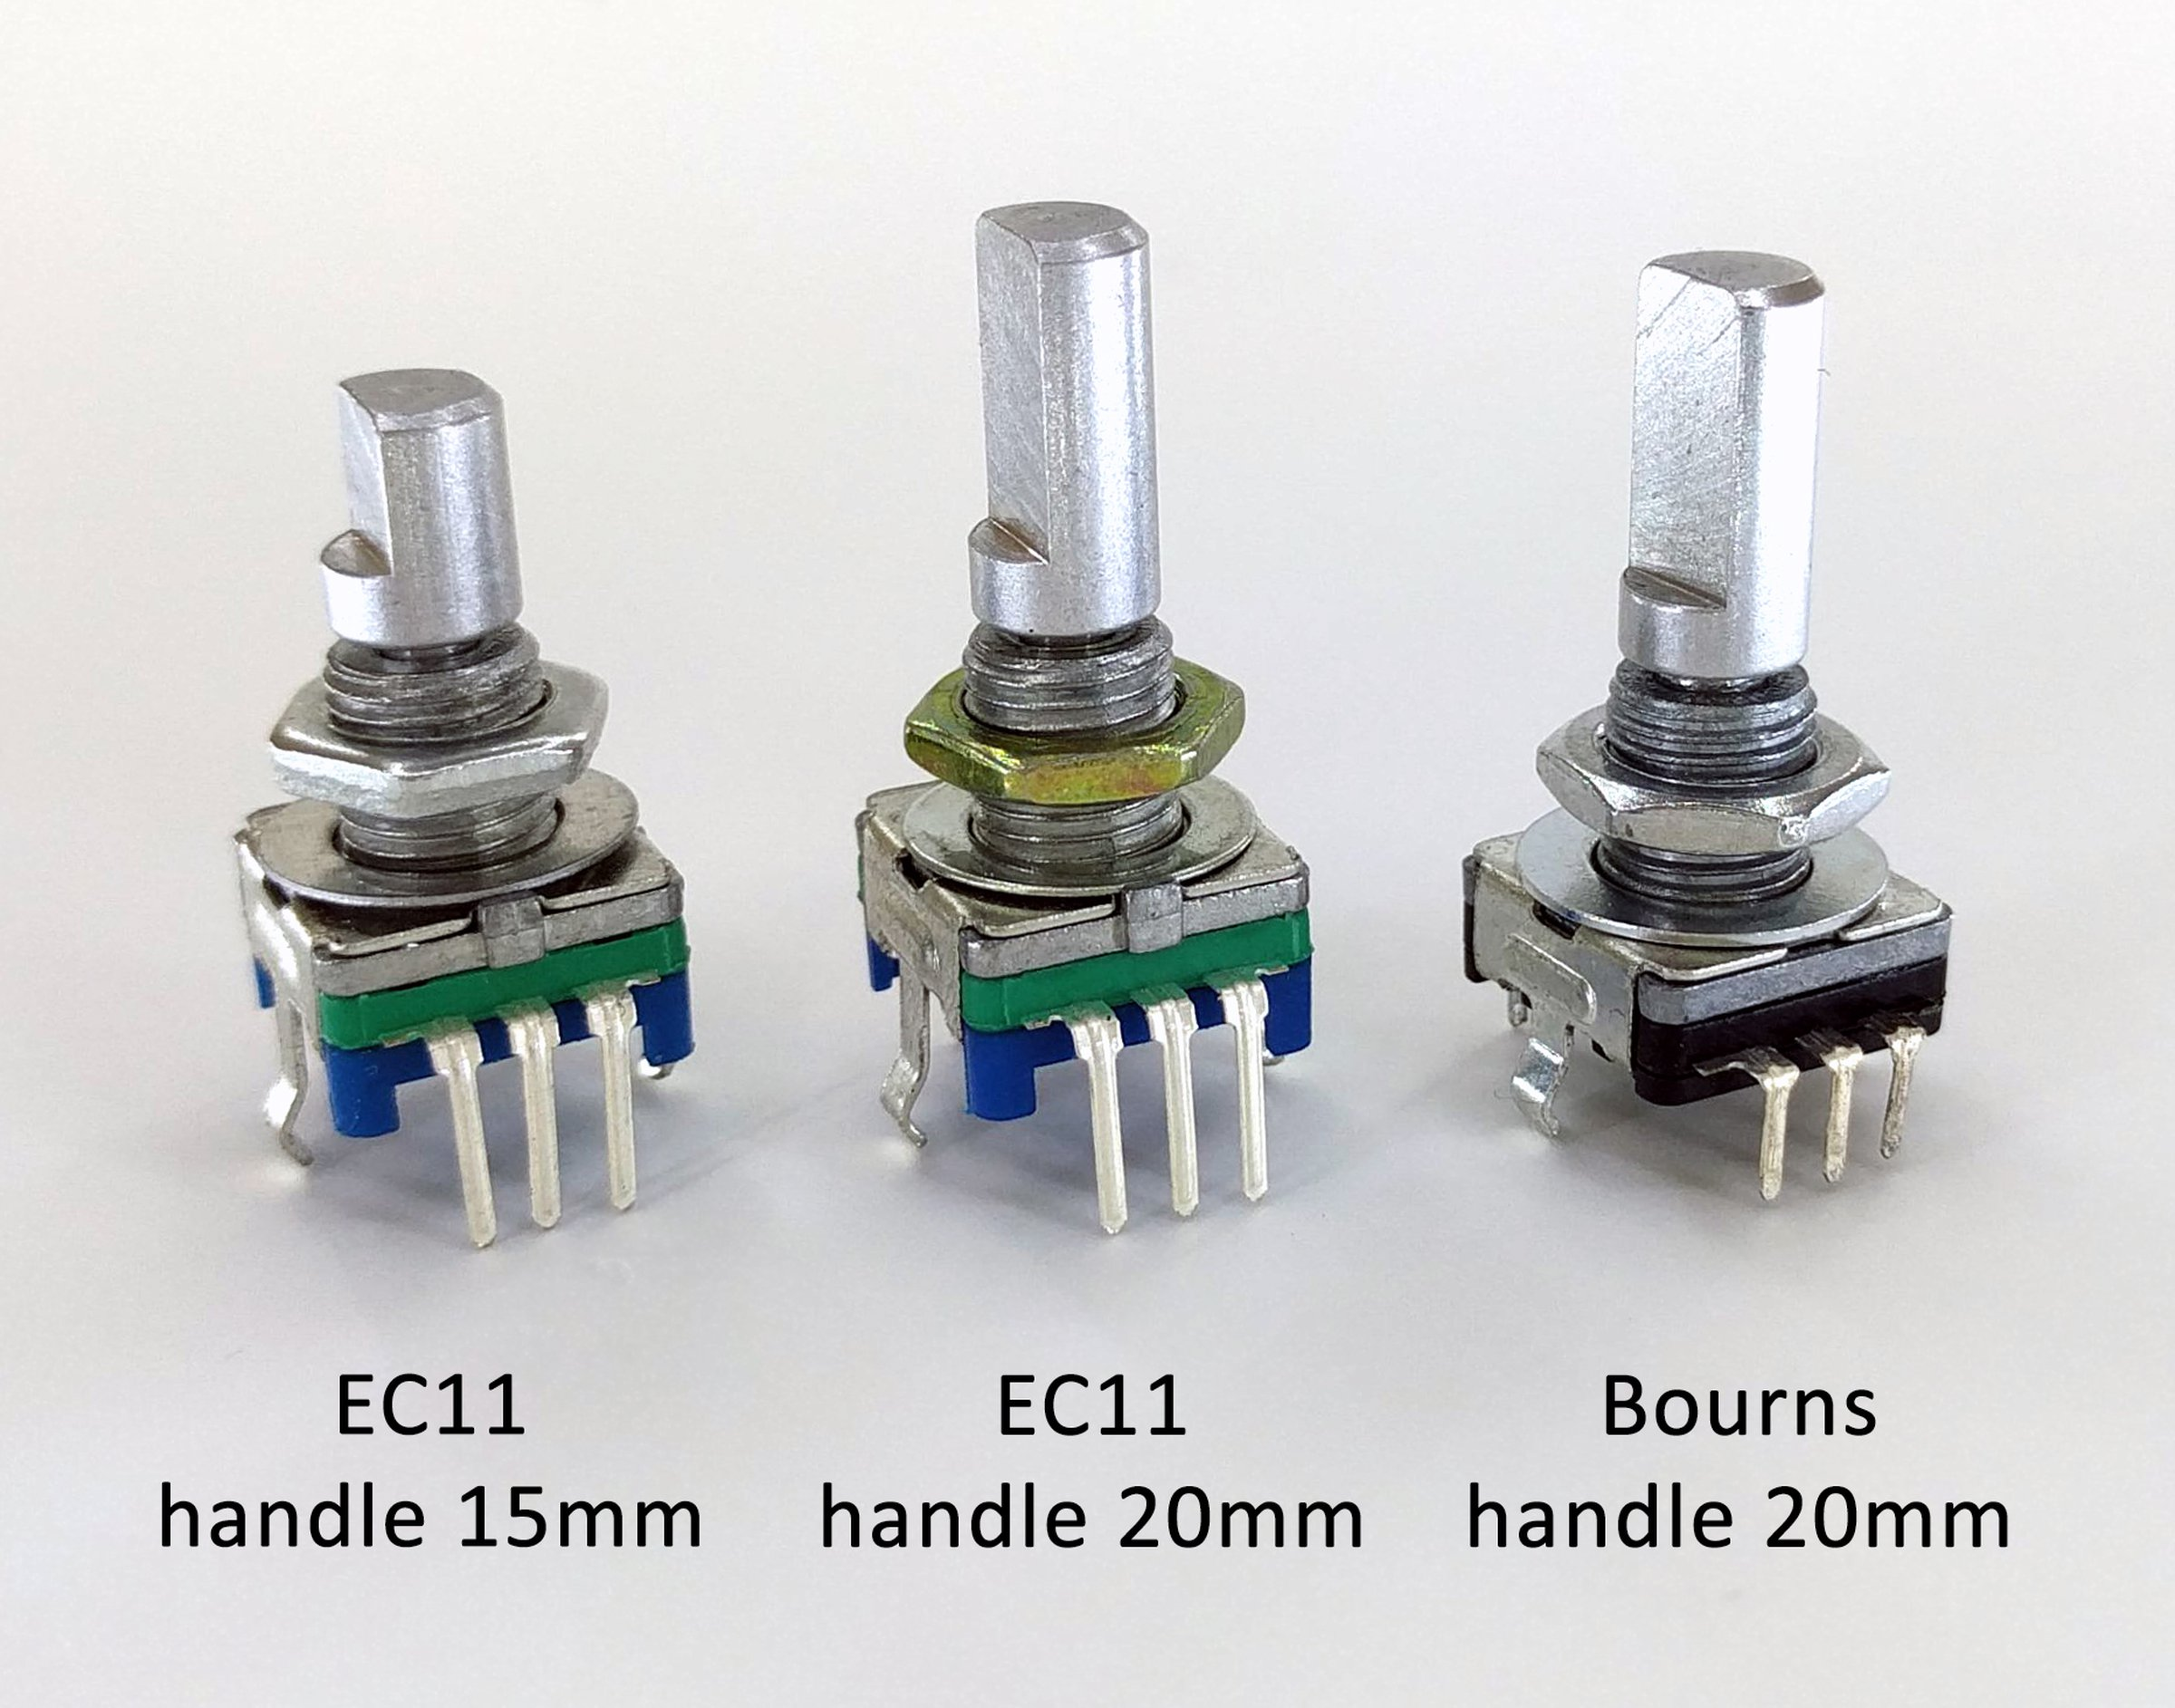 Different types of available encoders